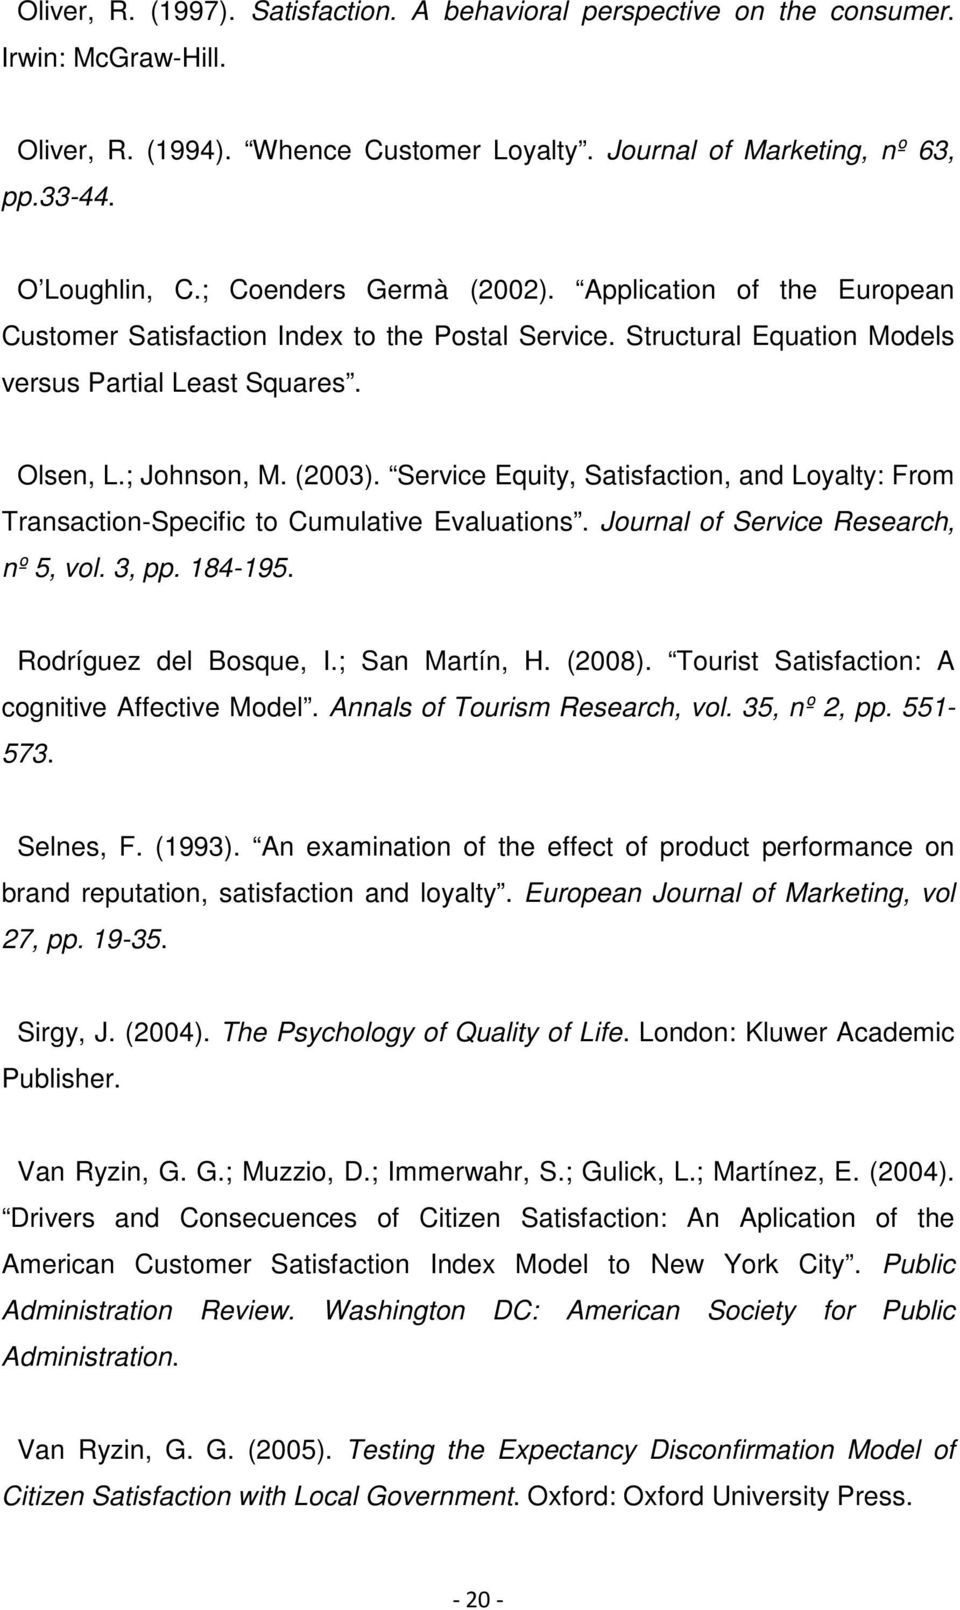 Service Equity, Satisfaction, and Loyalty: From Transaction-Specific to Cumulative Evaluations. Journal of Service Research, nº 5, vol. 3, pp. 184-195. Rodríguez del Bosque, I.; San Martín, H. (2008).